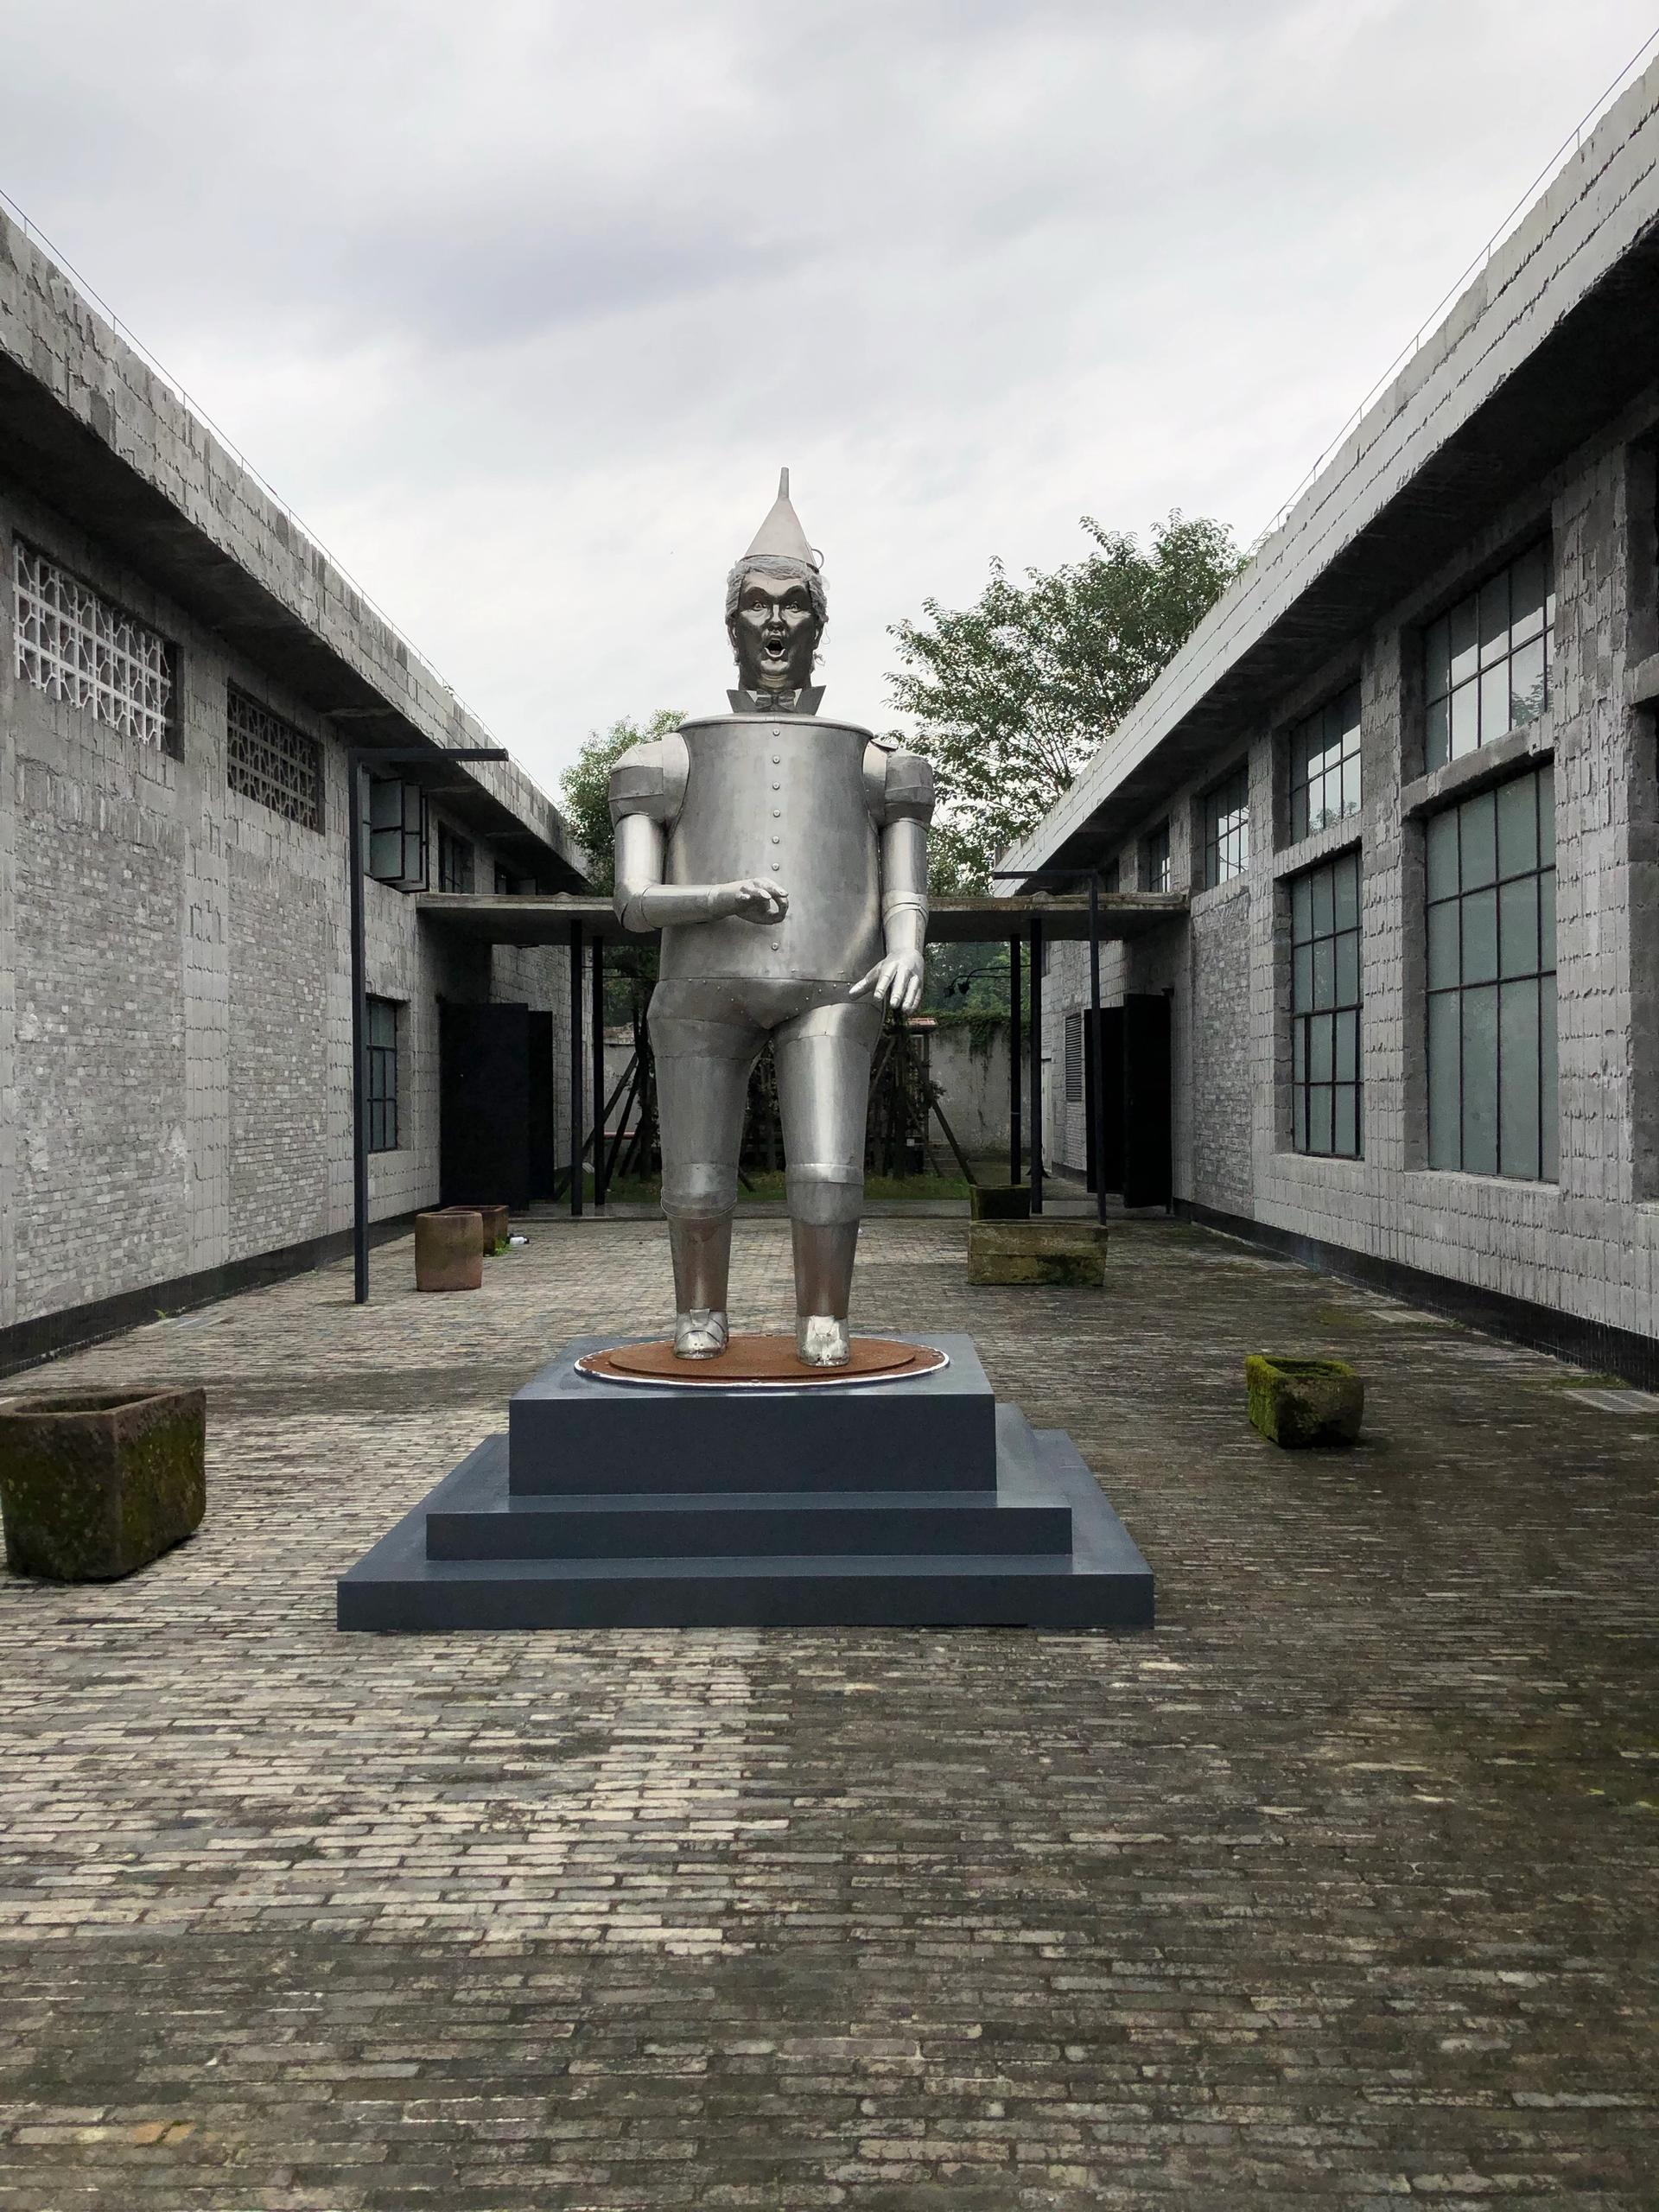 Coco Fusco's Tin Man of the Twenty-First Century arrives at China's Anren Biennale Courtesy of Tettero, Anren Biennale 2019 © Coco Fusco/Artists Rights Society (ARS), New York